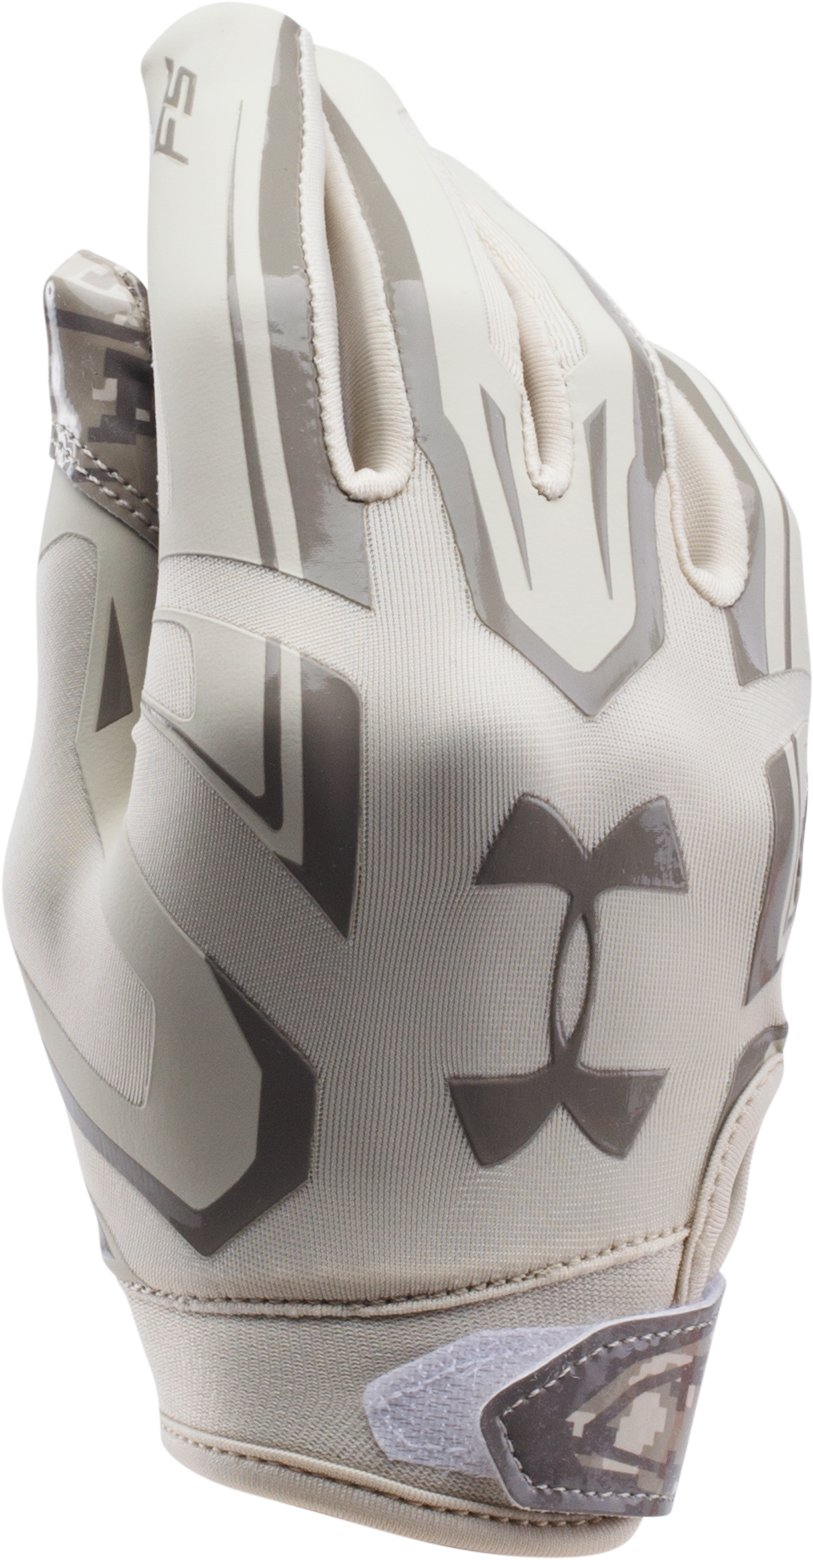 Boys' UA F5 — Limited Edition Football Gloves, Sandstorm, undefined